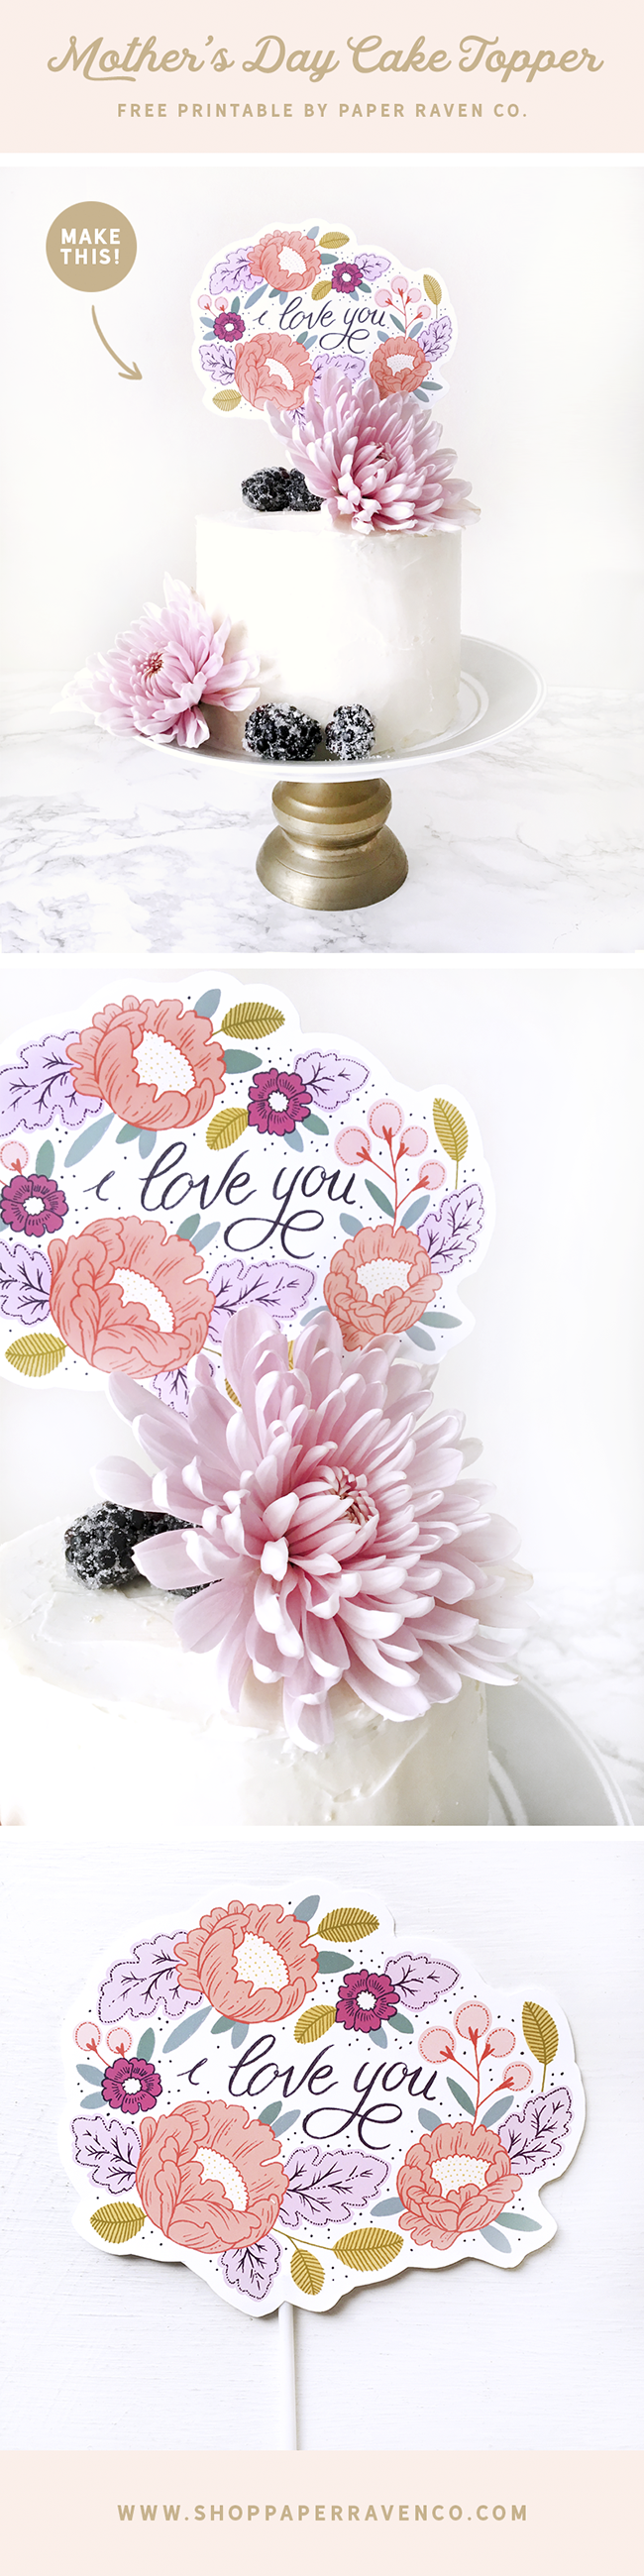 Paper Raven Co. Mother's Day Cake Topper Printable